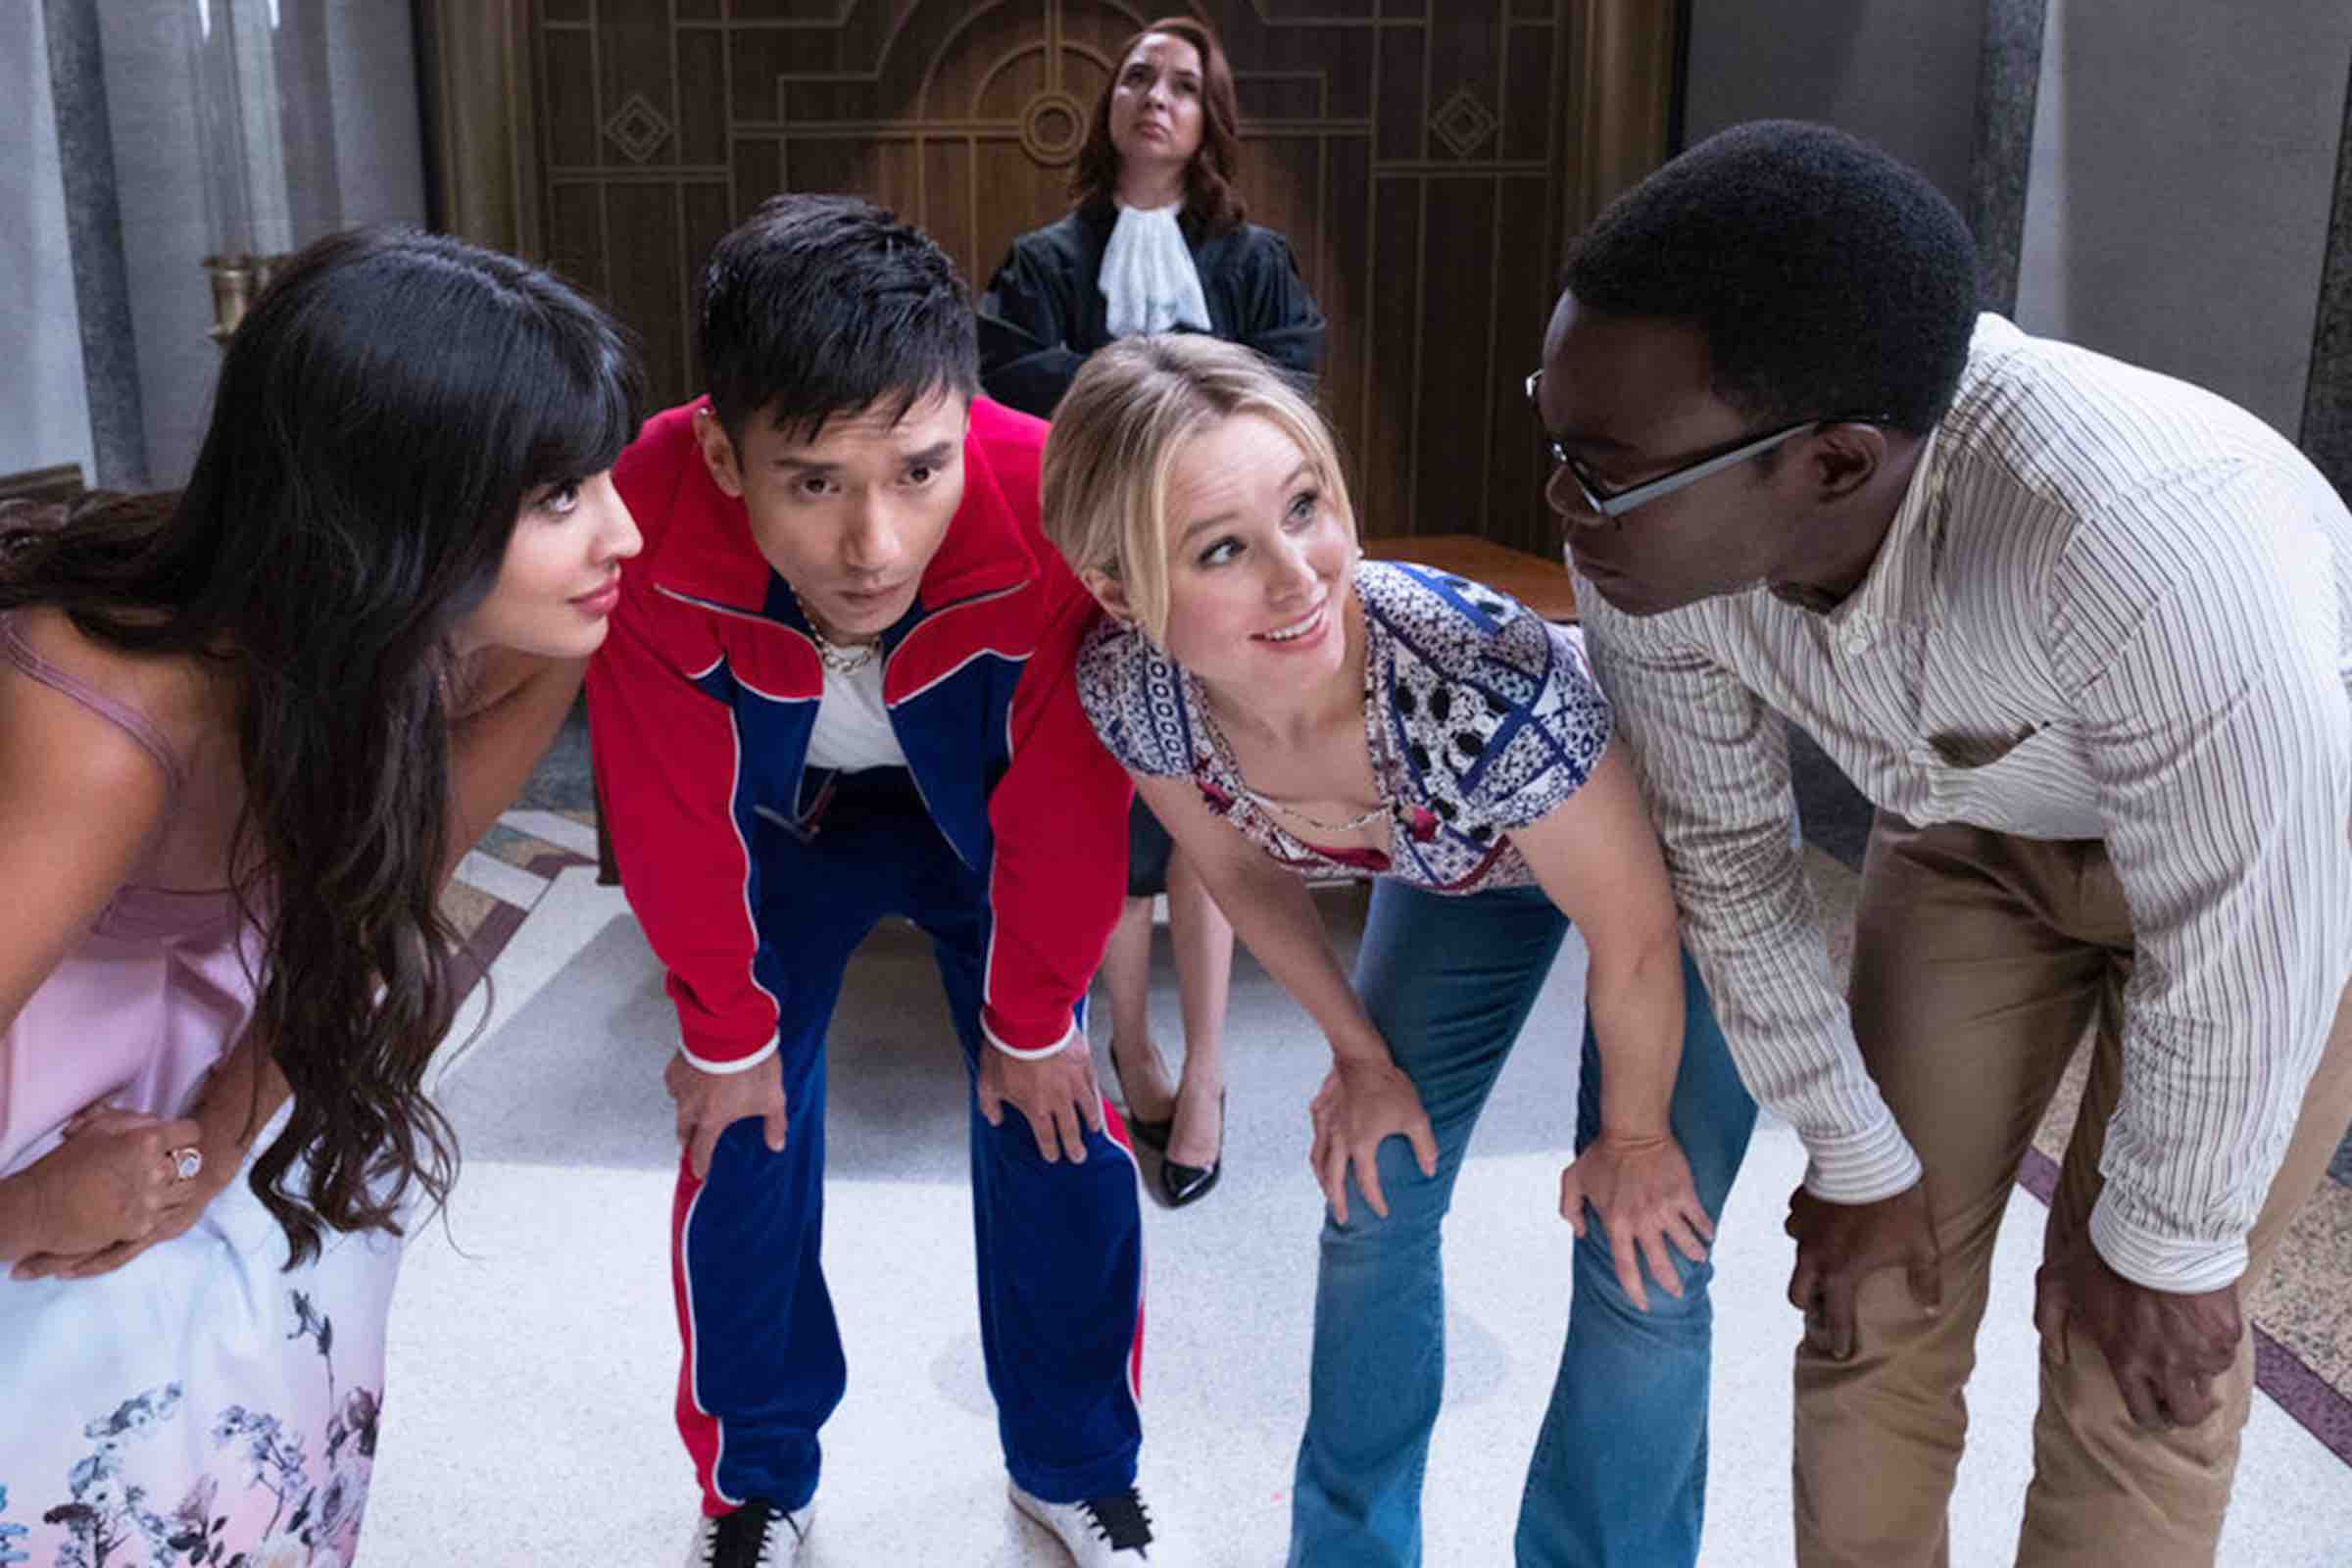 'The Good Place' only has a few episodes left in its fourth and final season. Here's everything you need to know about the upcoming season.